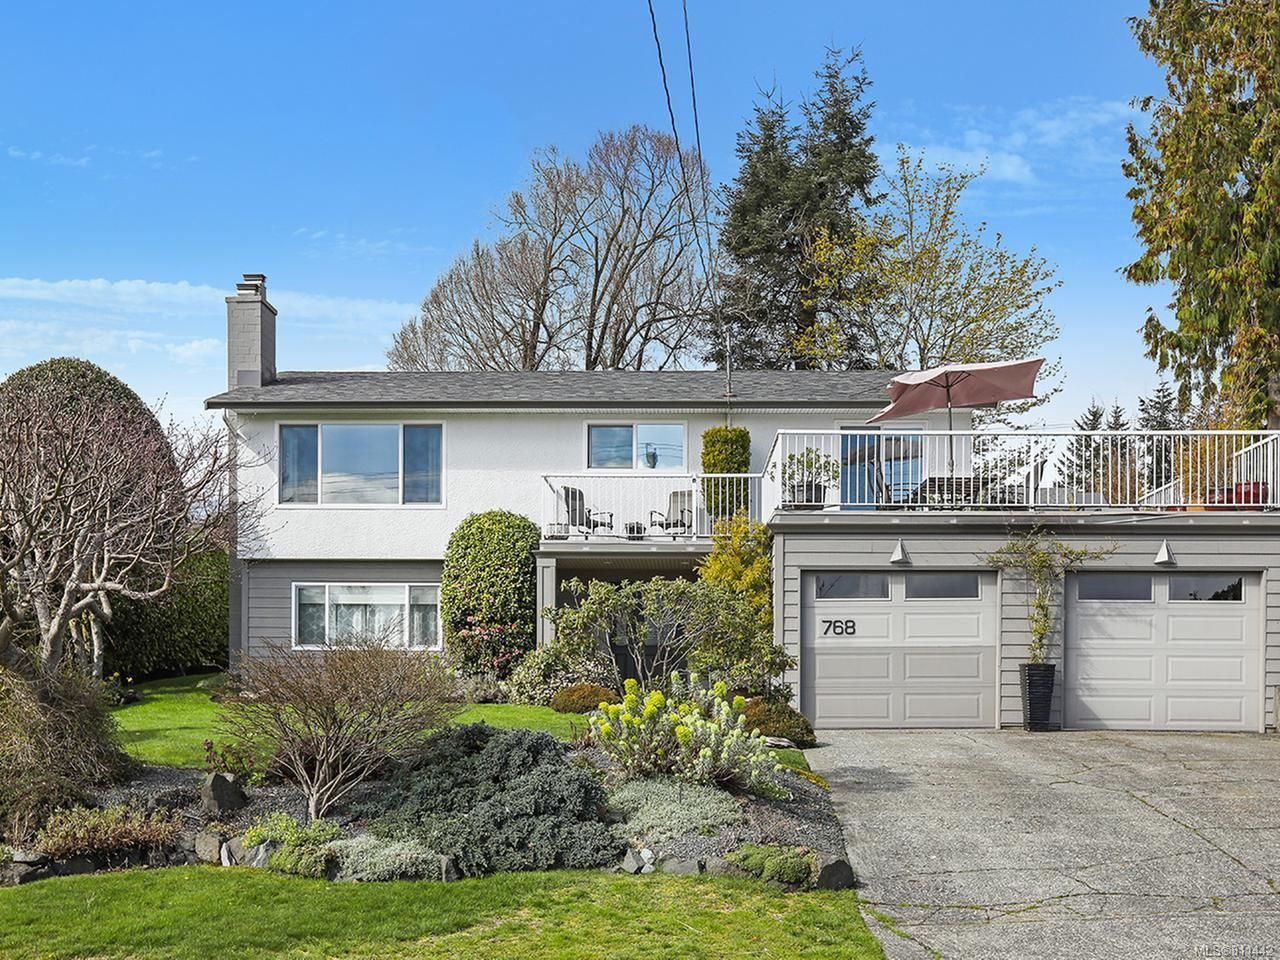 Main Photo: 768 Galerno Rd in CAMPBELL RIVER: CR Campbell River Central House for sale (Campbell River)  : MLS®# 811442